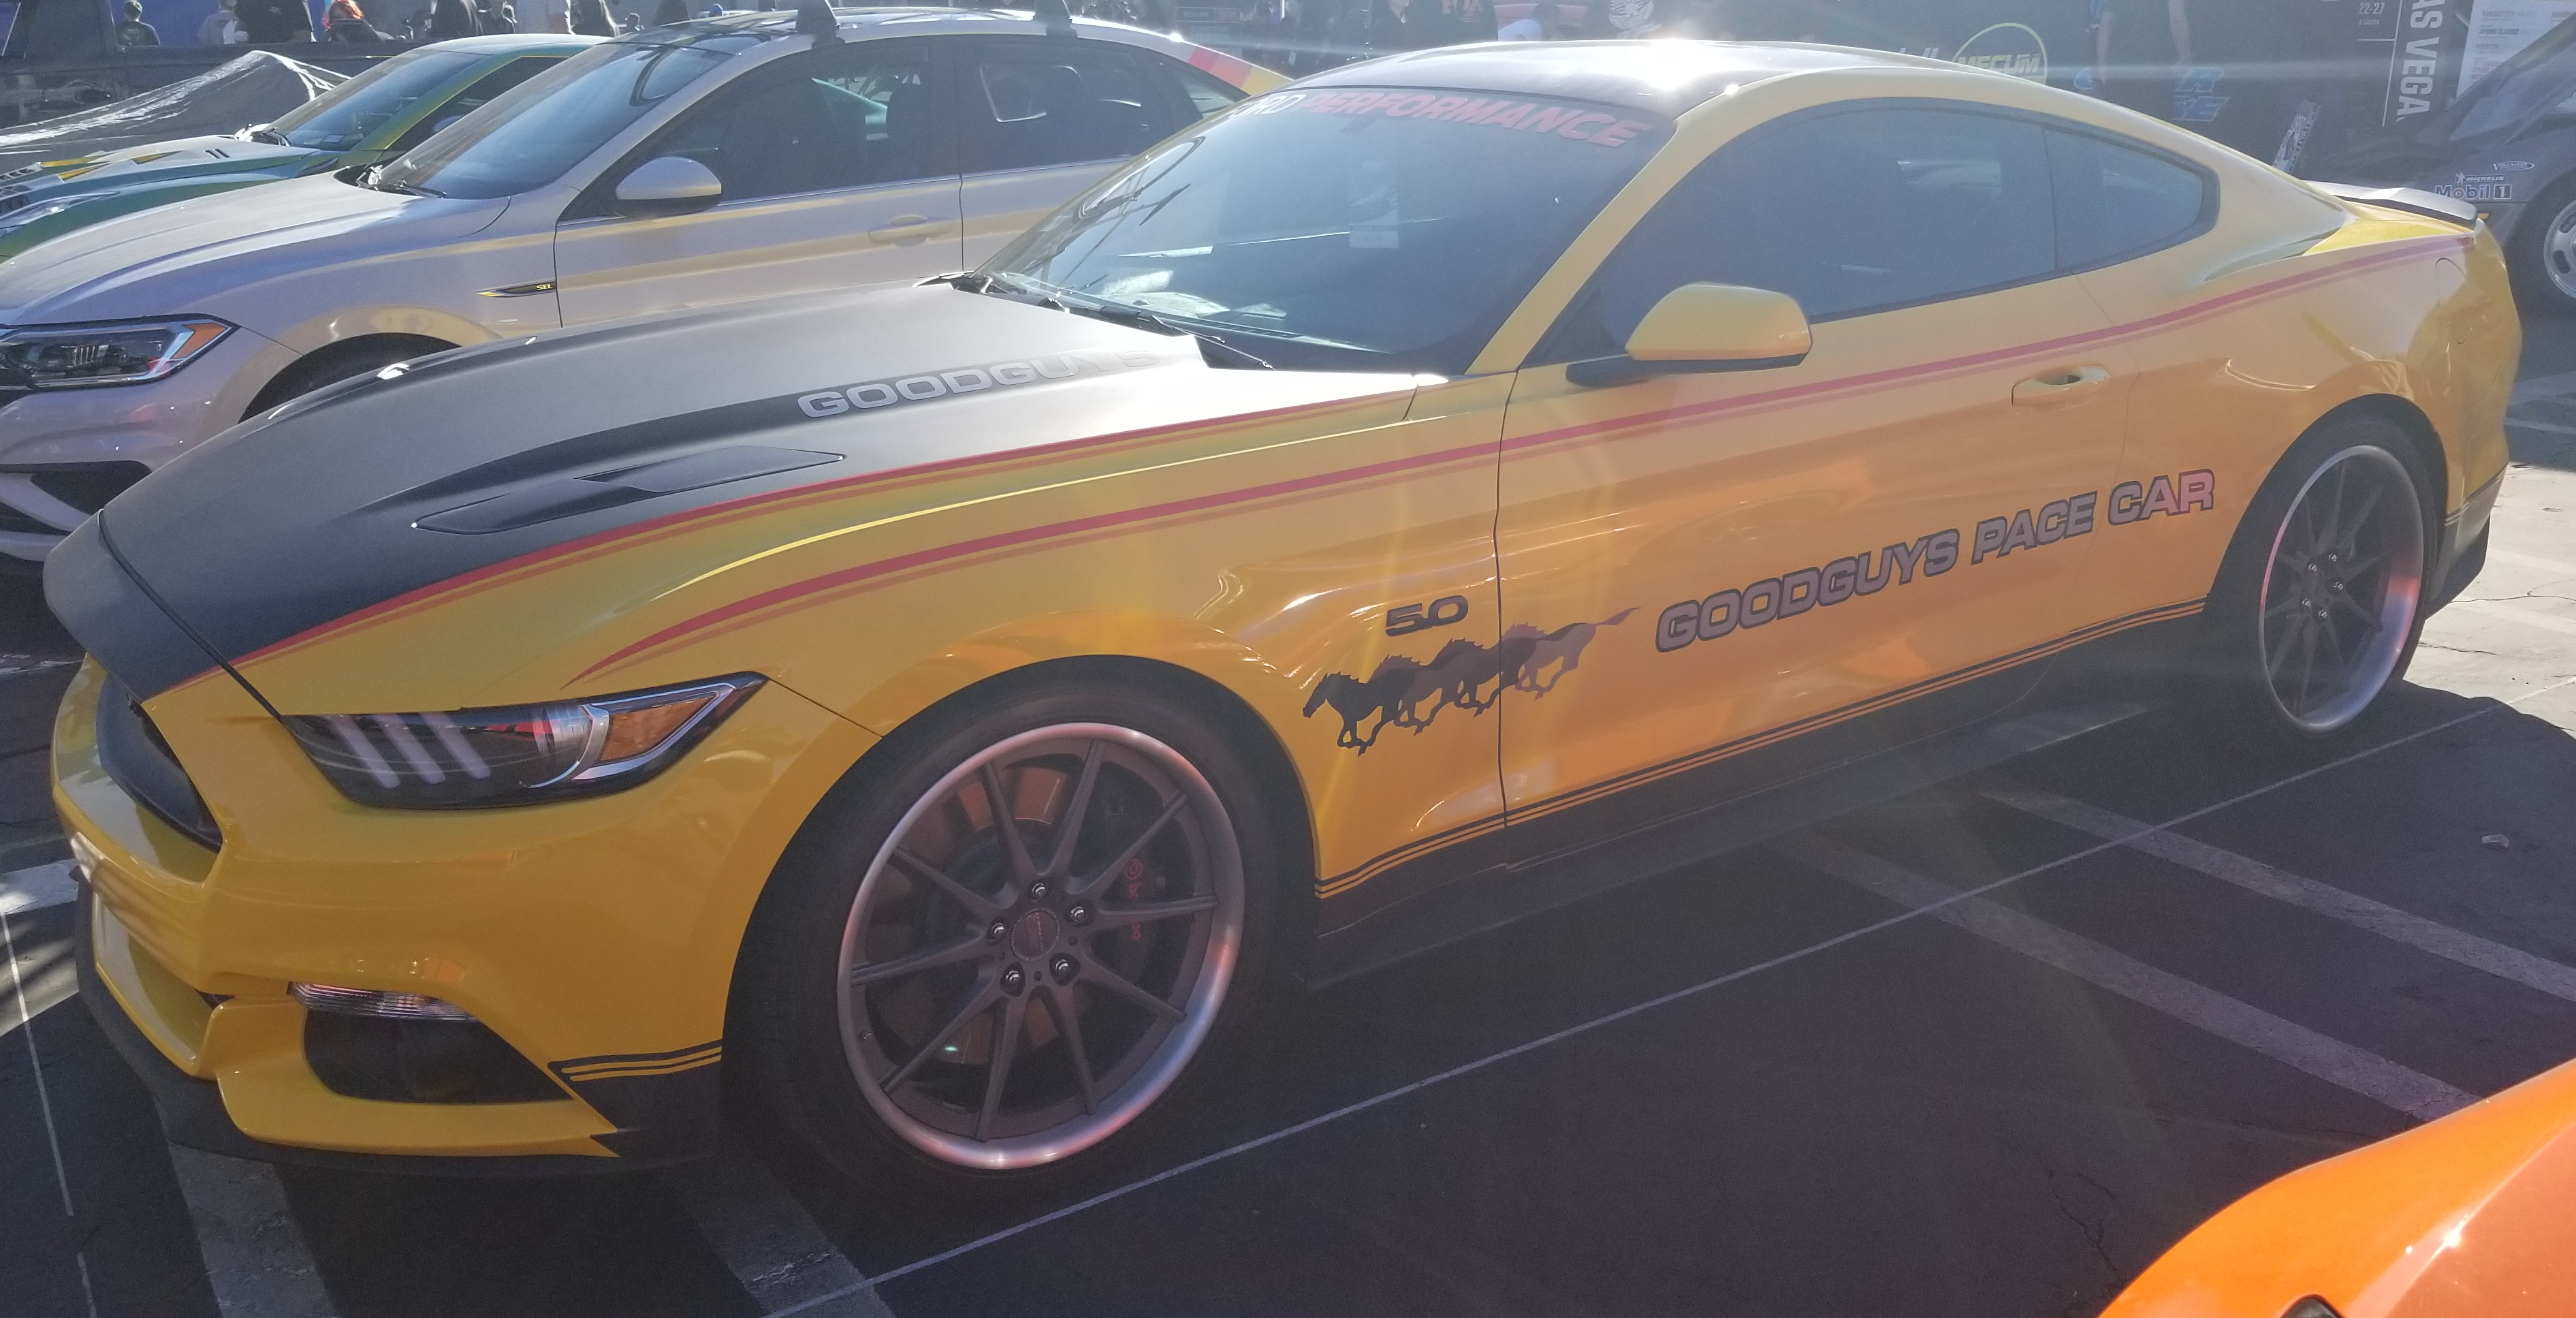 A Ford Mustang, with a paint job dubbing it the GoodGuys Pace Car.